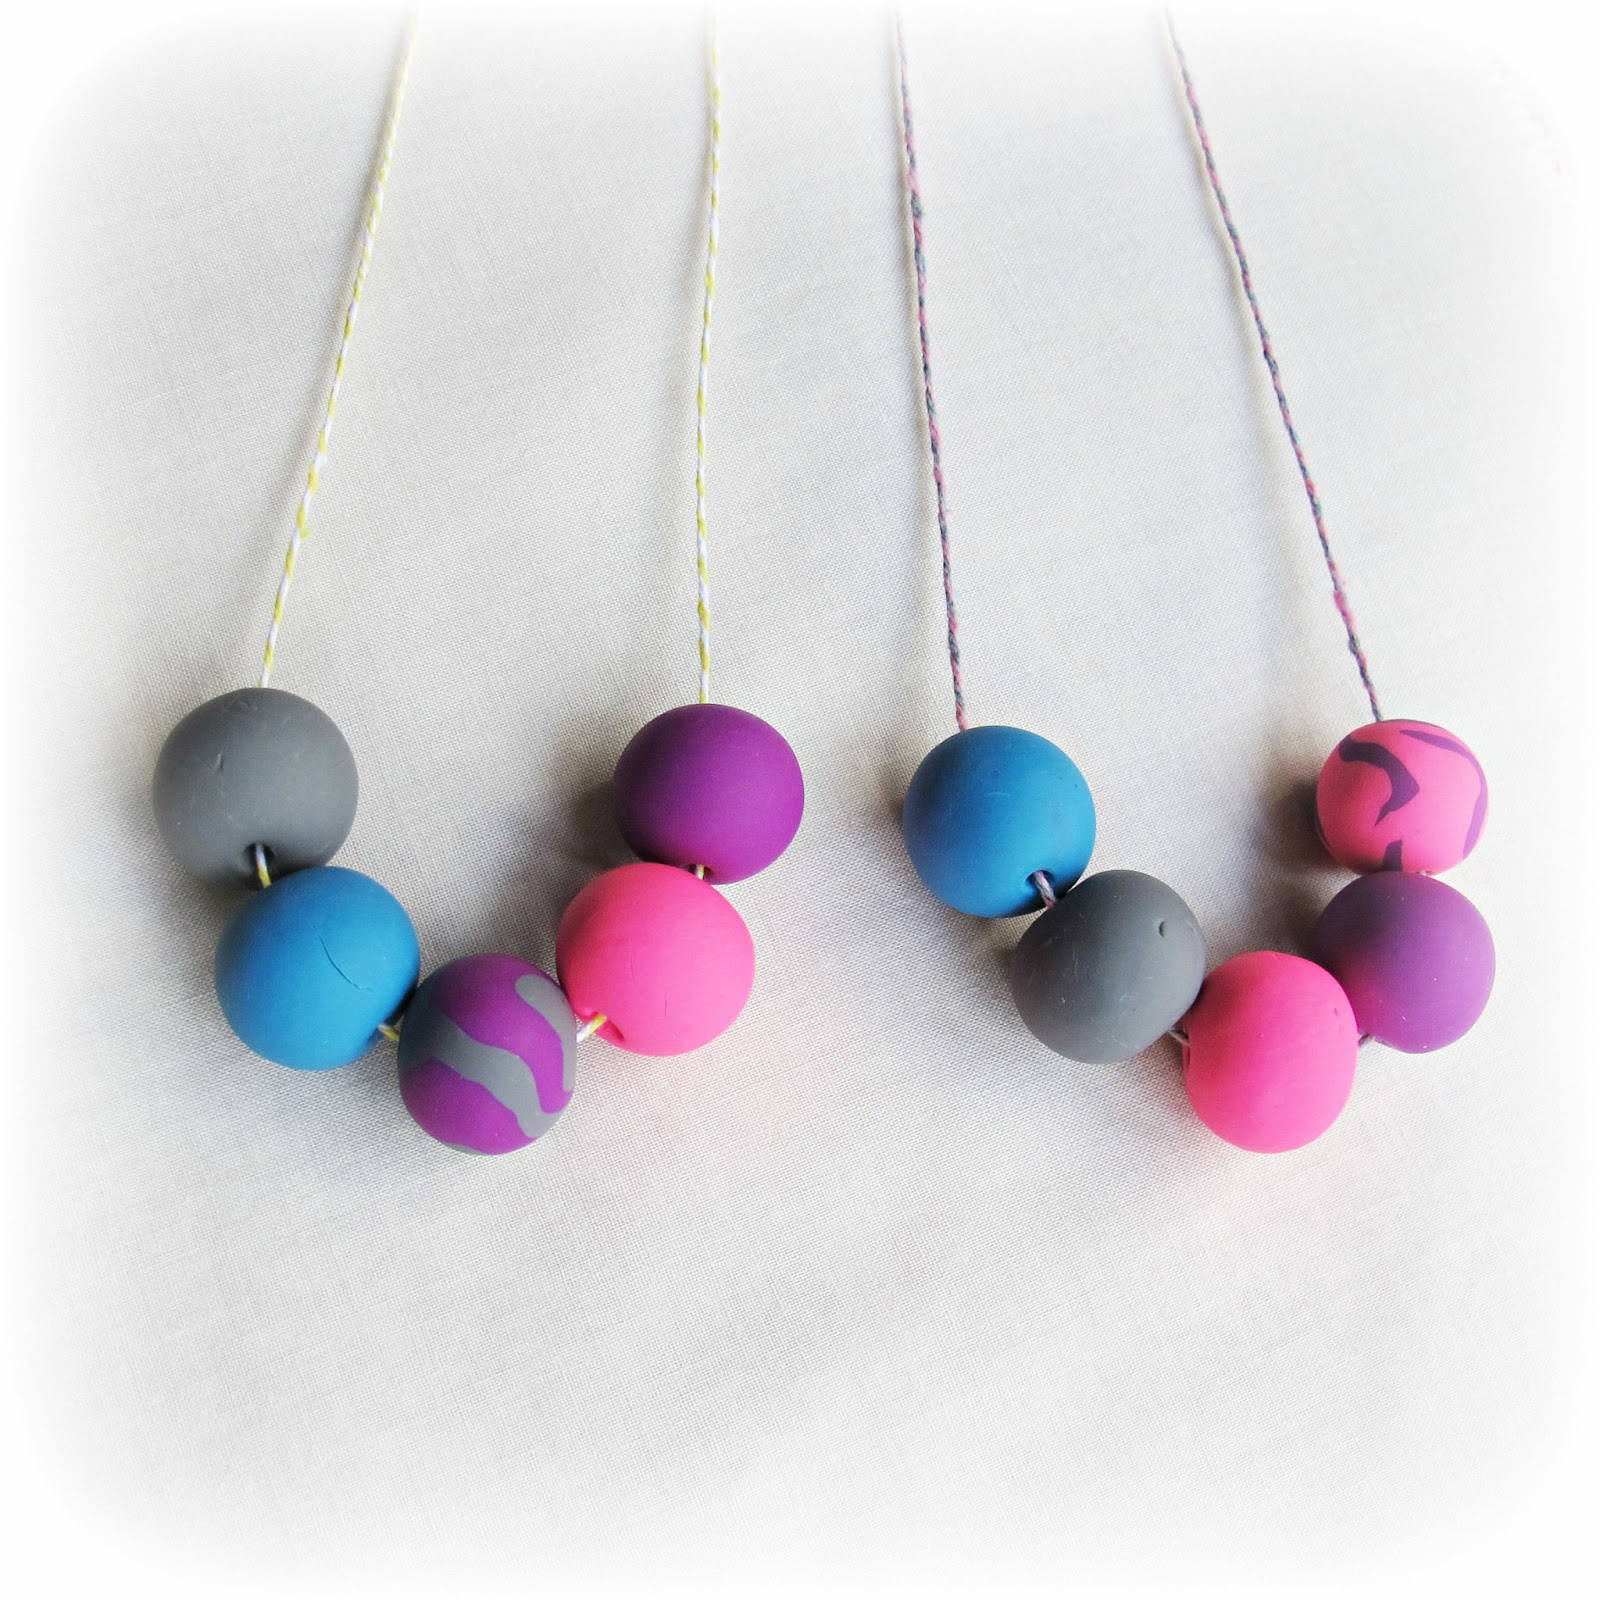 image gumball necklace polymer clay sculpey pink purple grey blue baker's twine tutorial diy